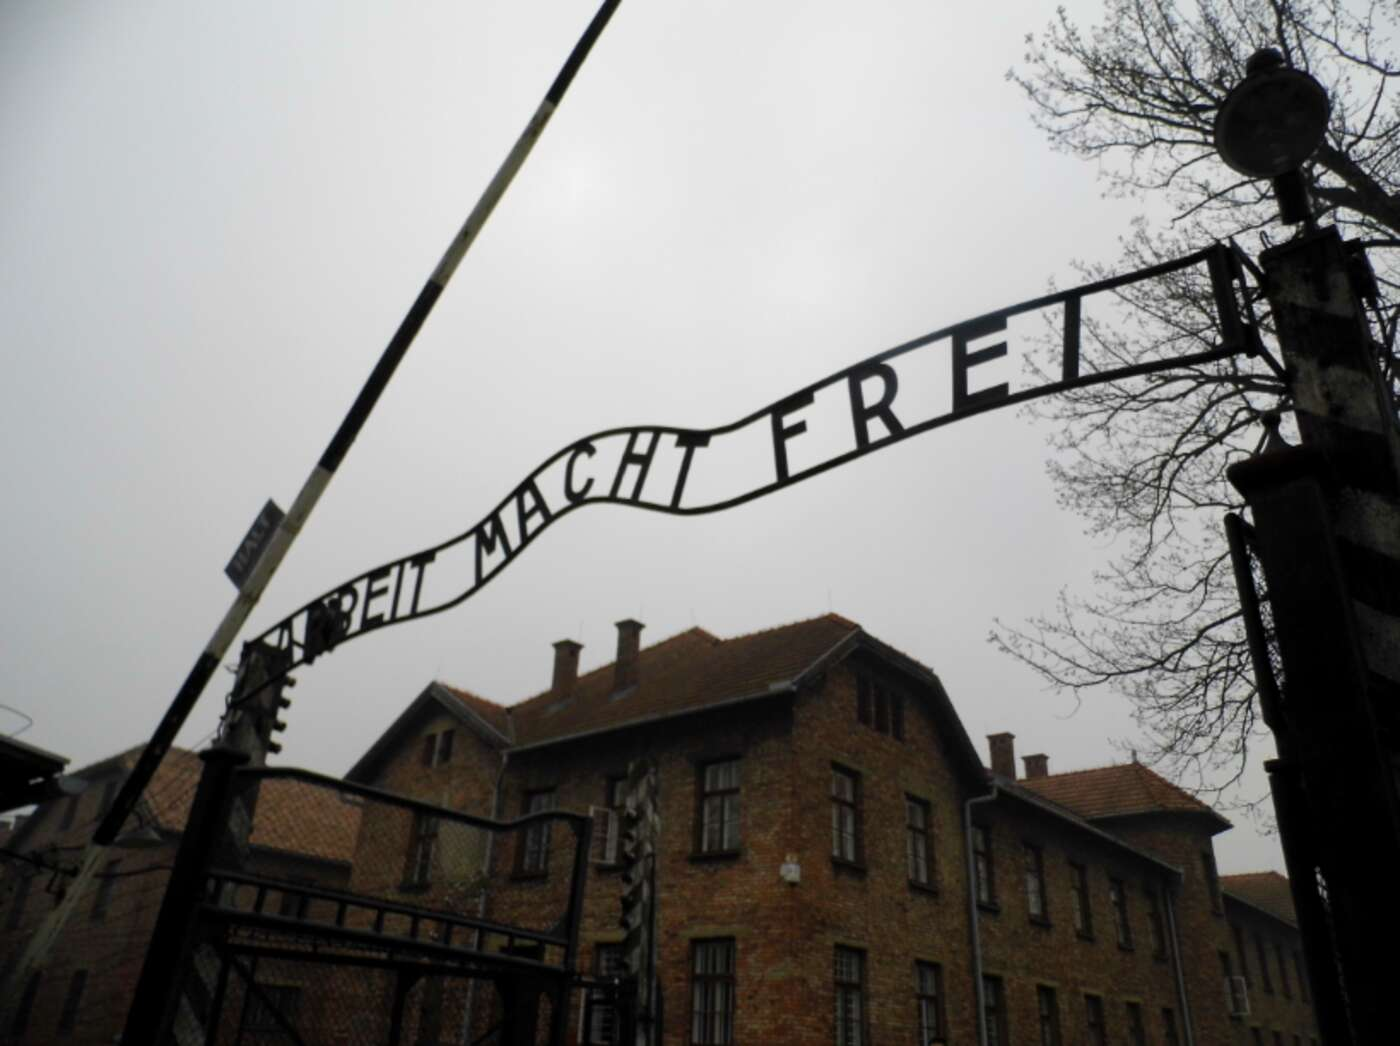 The famous entrance to the Auschwitz-Birkenau museum.